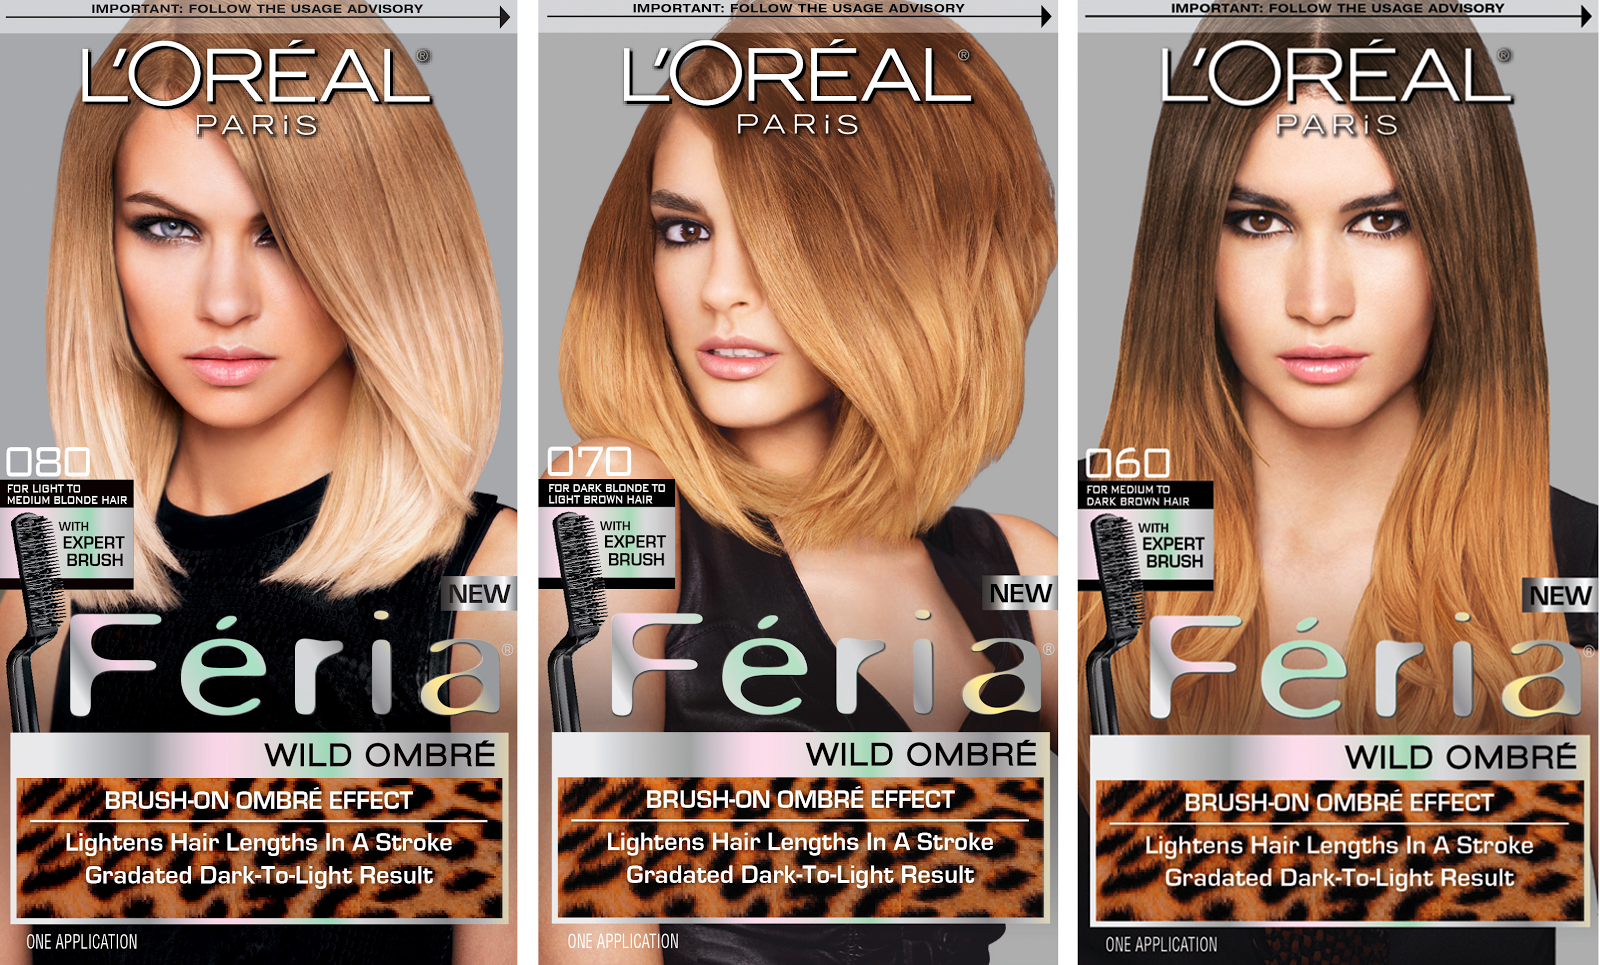 Oreal Paris Feria Wild Ombre Hair Colour Kit: Review and Results